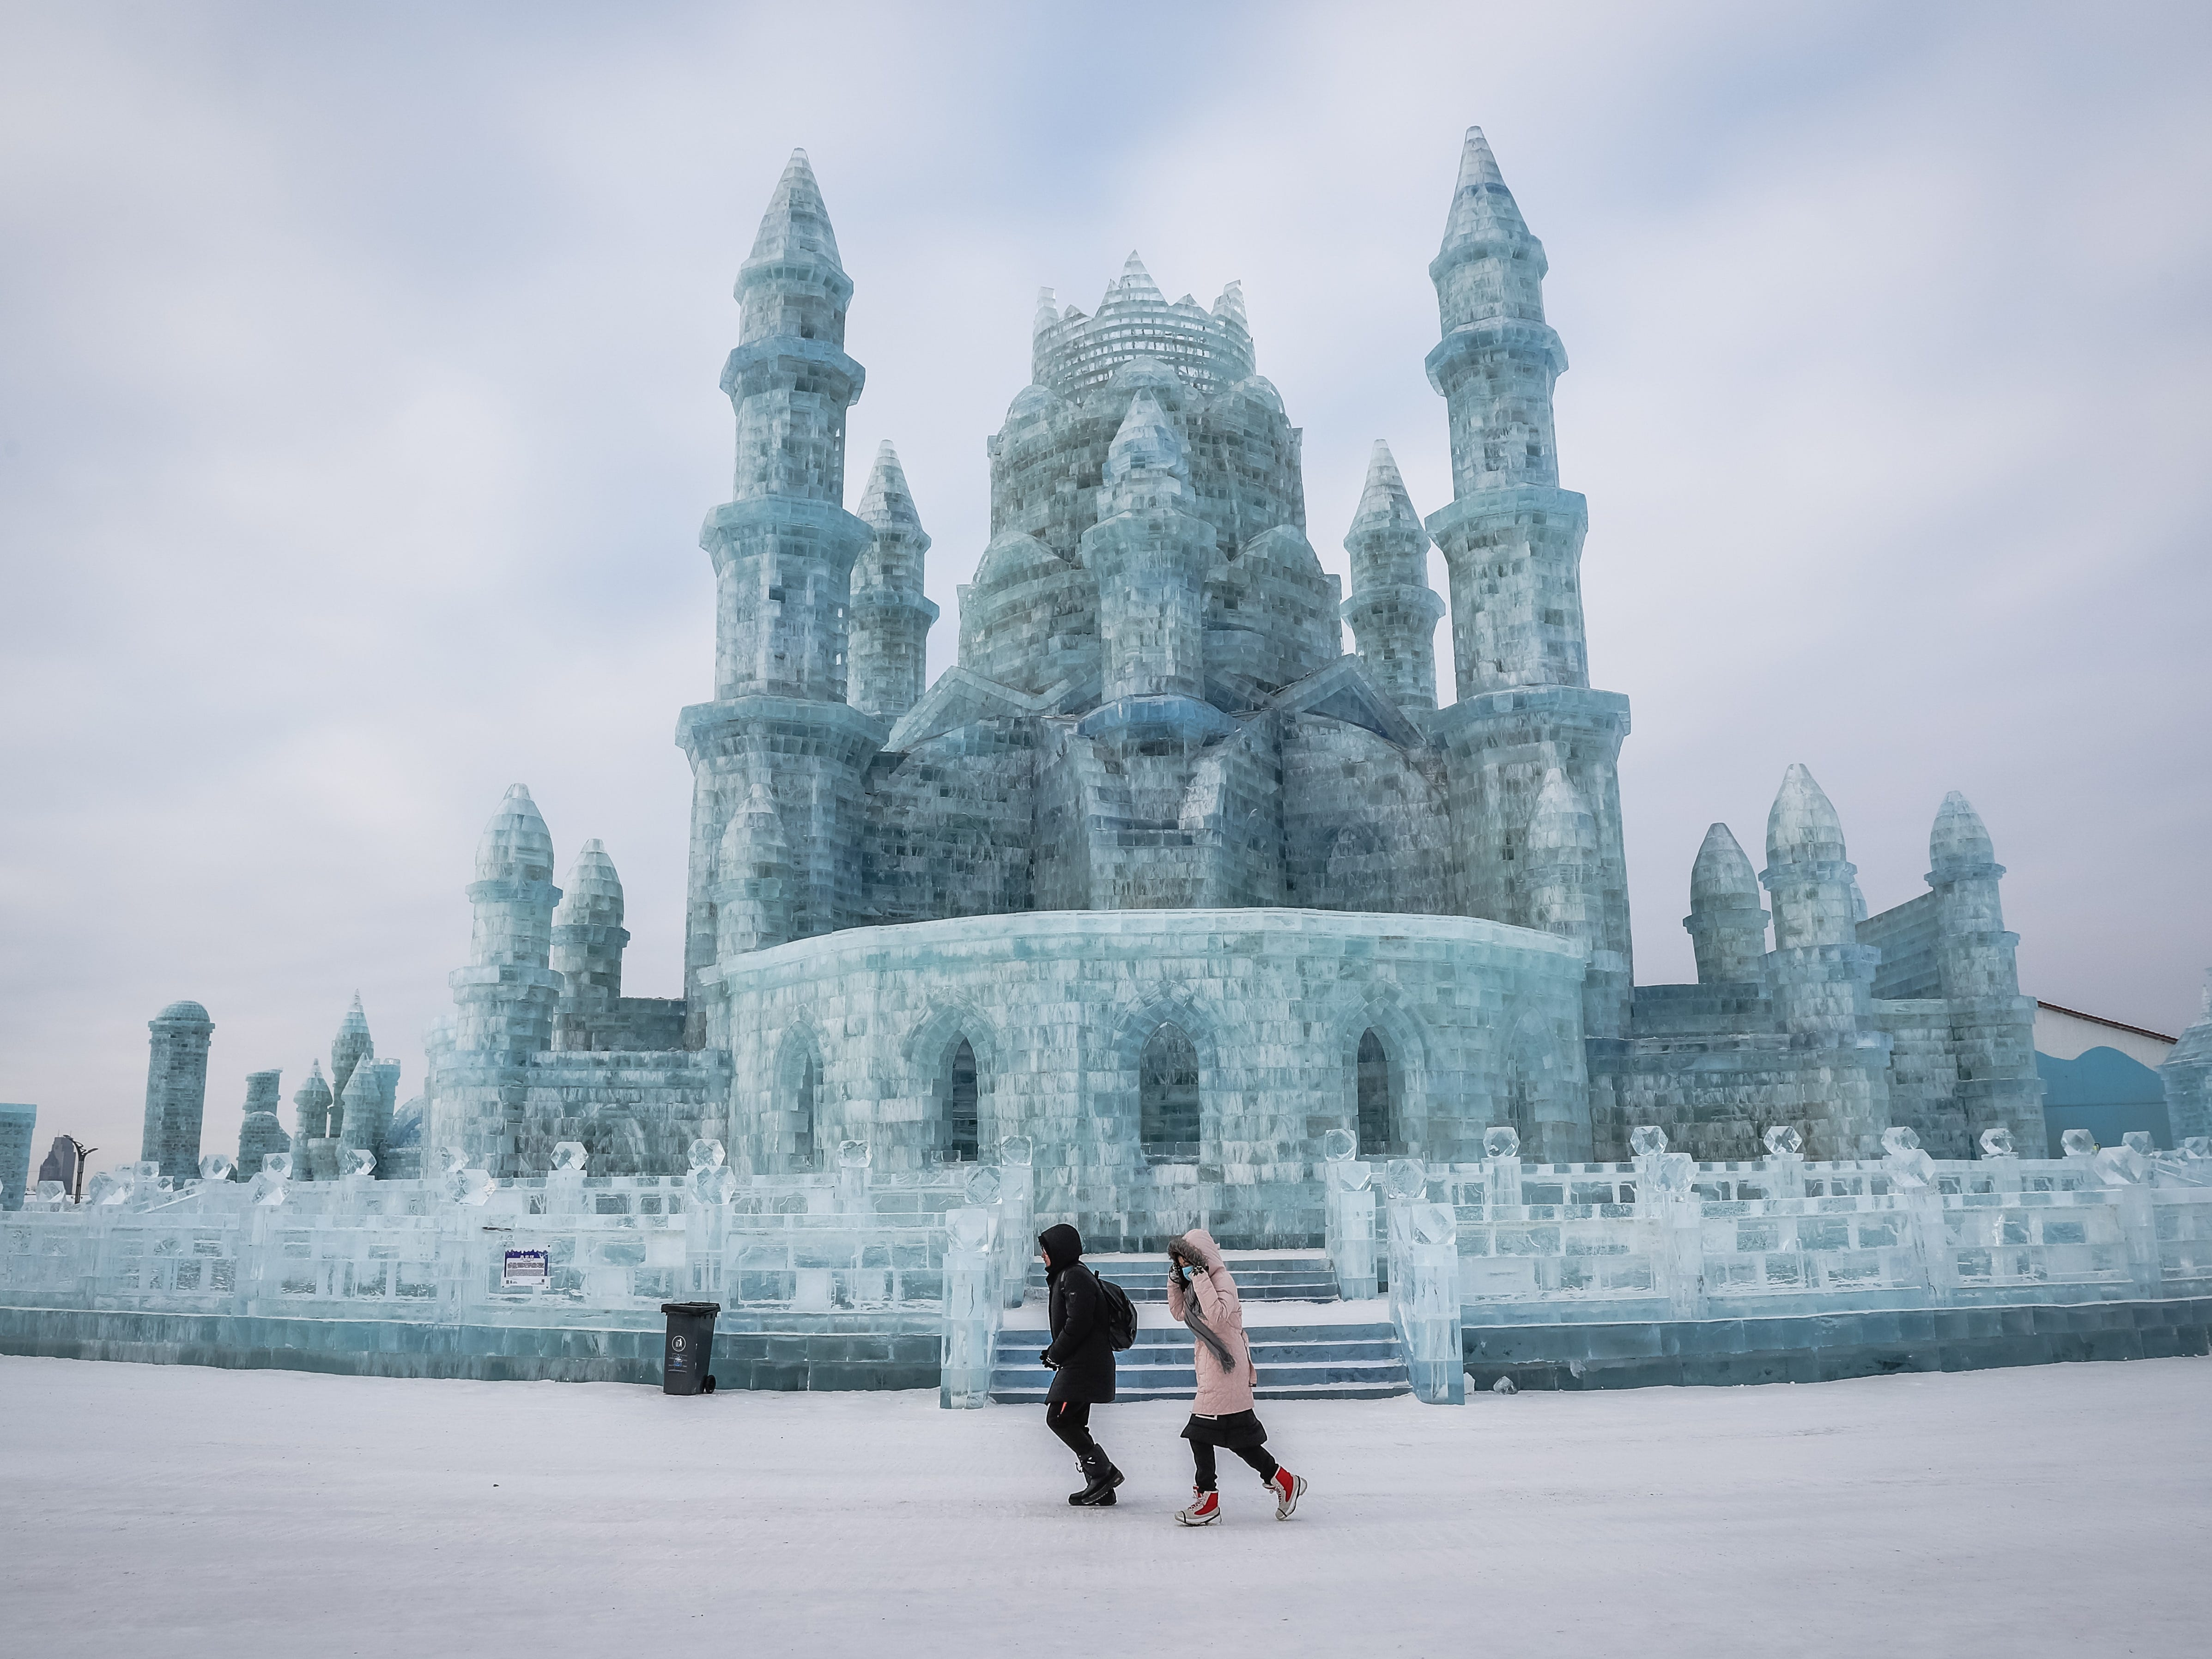 Some 120,000 cubic meters of ice and 111,000 cubic meters of snow were used to build the Harbin Ice and Snow World where the festival will last for about three months.